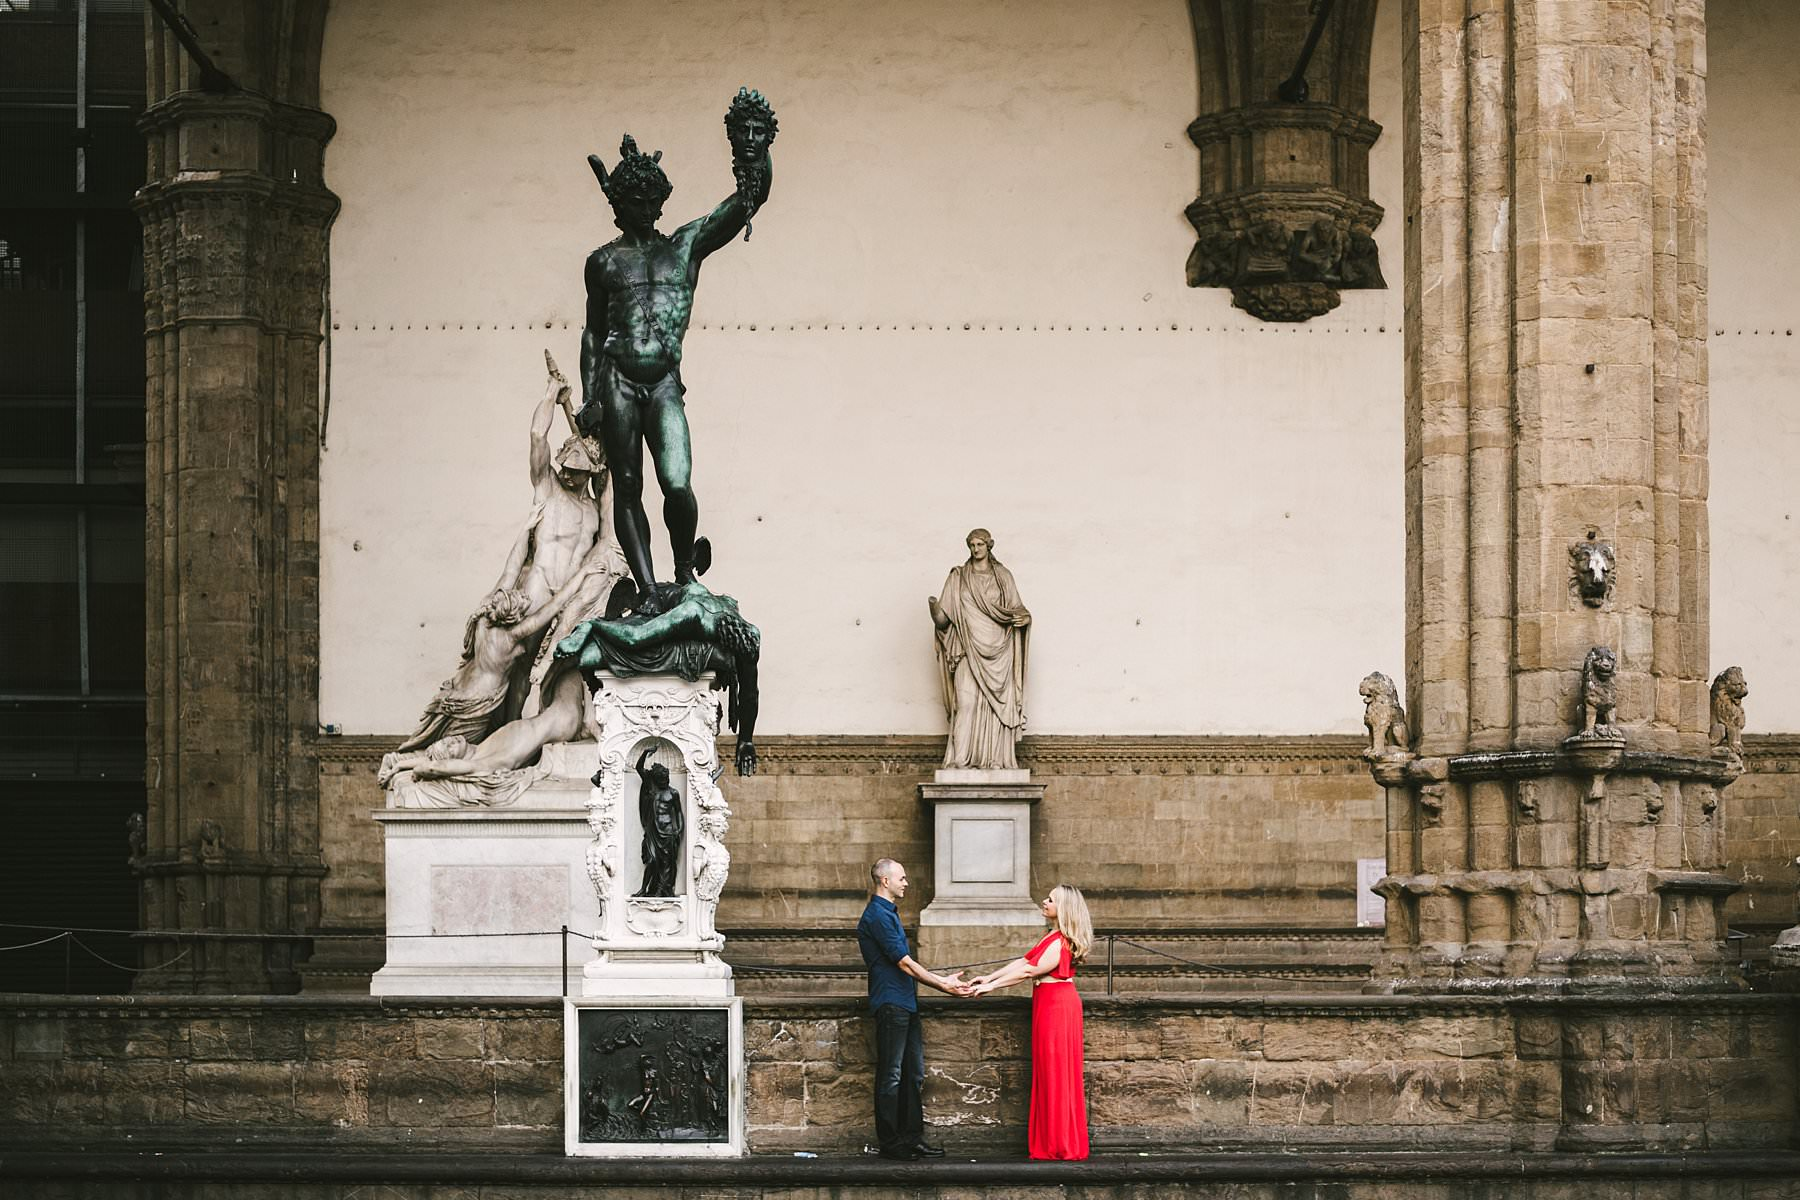 Sunrise photos in the magic of Florence. Sometimes, a picture is worth more than a thousand words: like these anniversary photos taken in Florence at sunrise, a perfect representation of love!